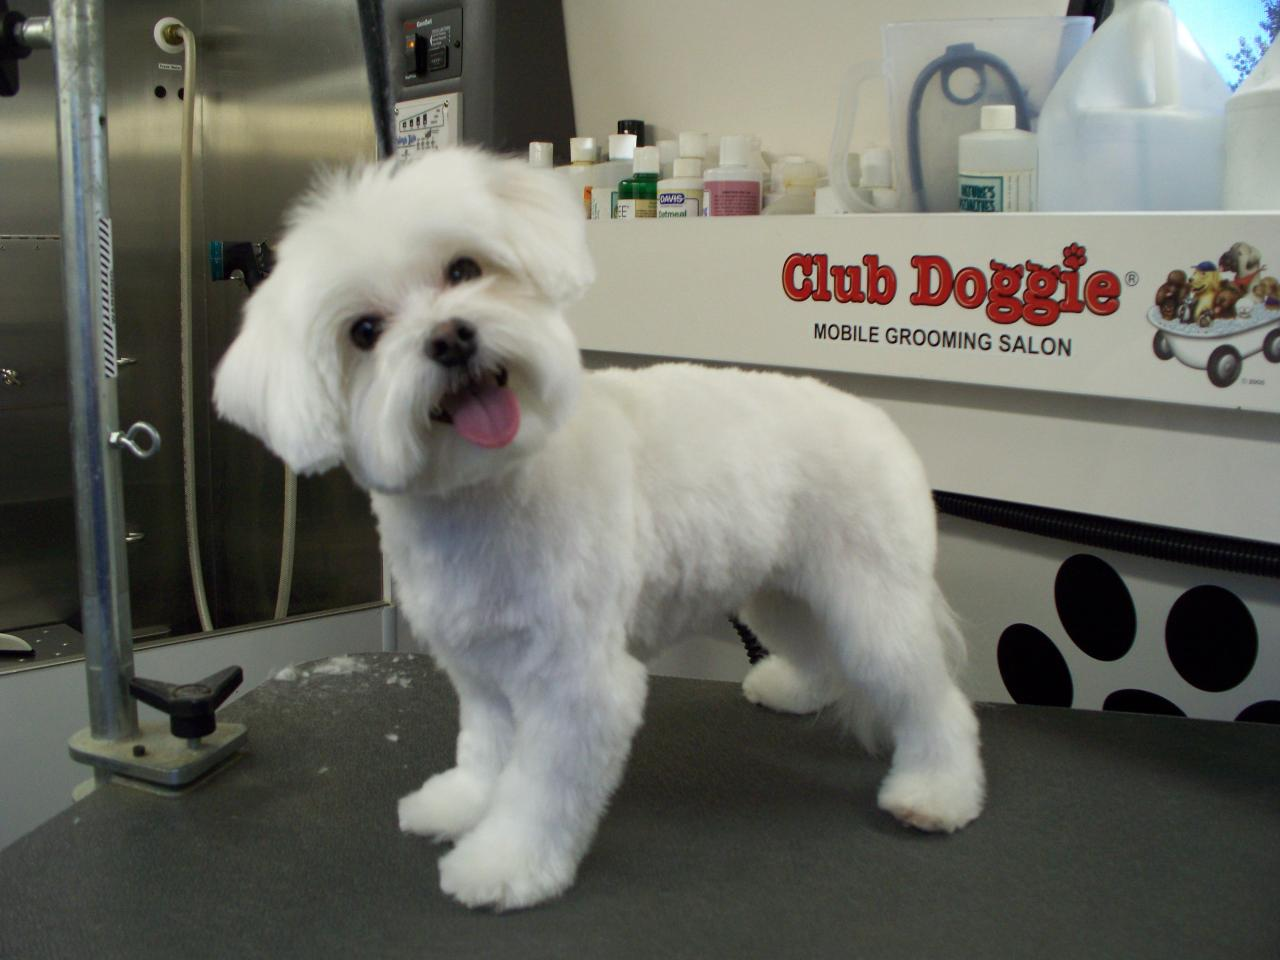 Club doggie mobile grooming salon before and after photo gallery maltese after winobraniefo Image collections